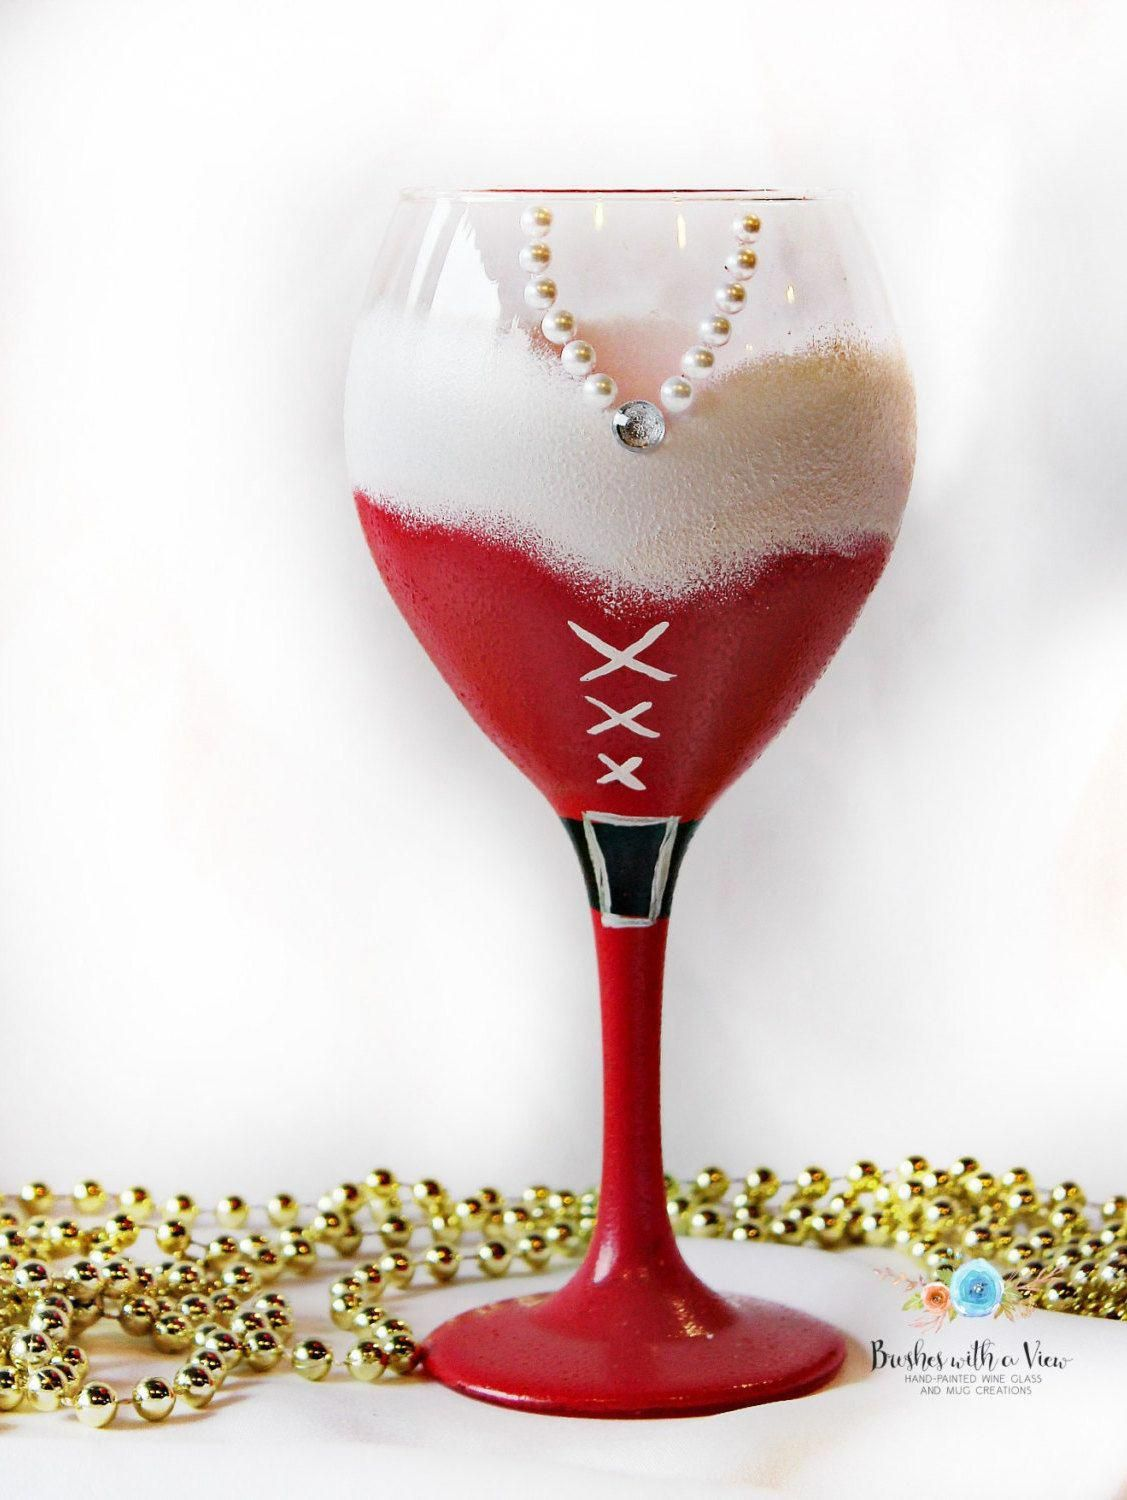 Pin by Megan Elizabeth on Gifts | Christmas wine glasses ...